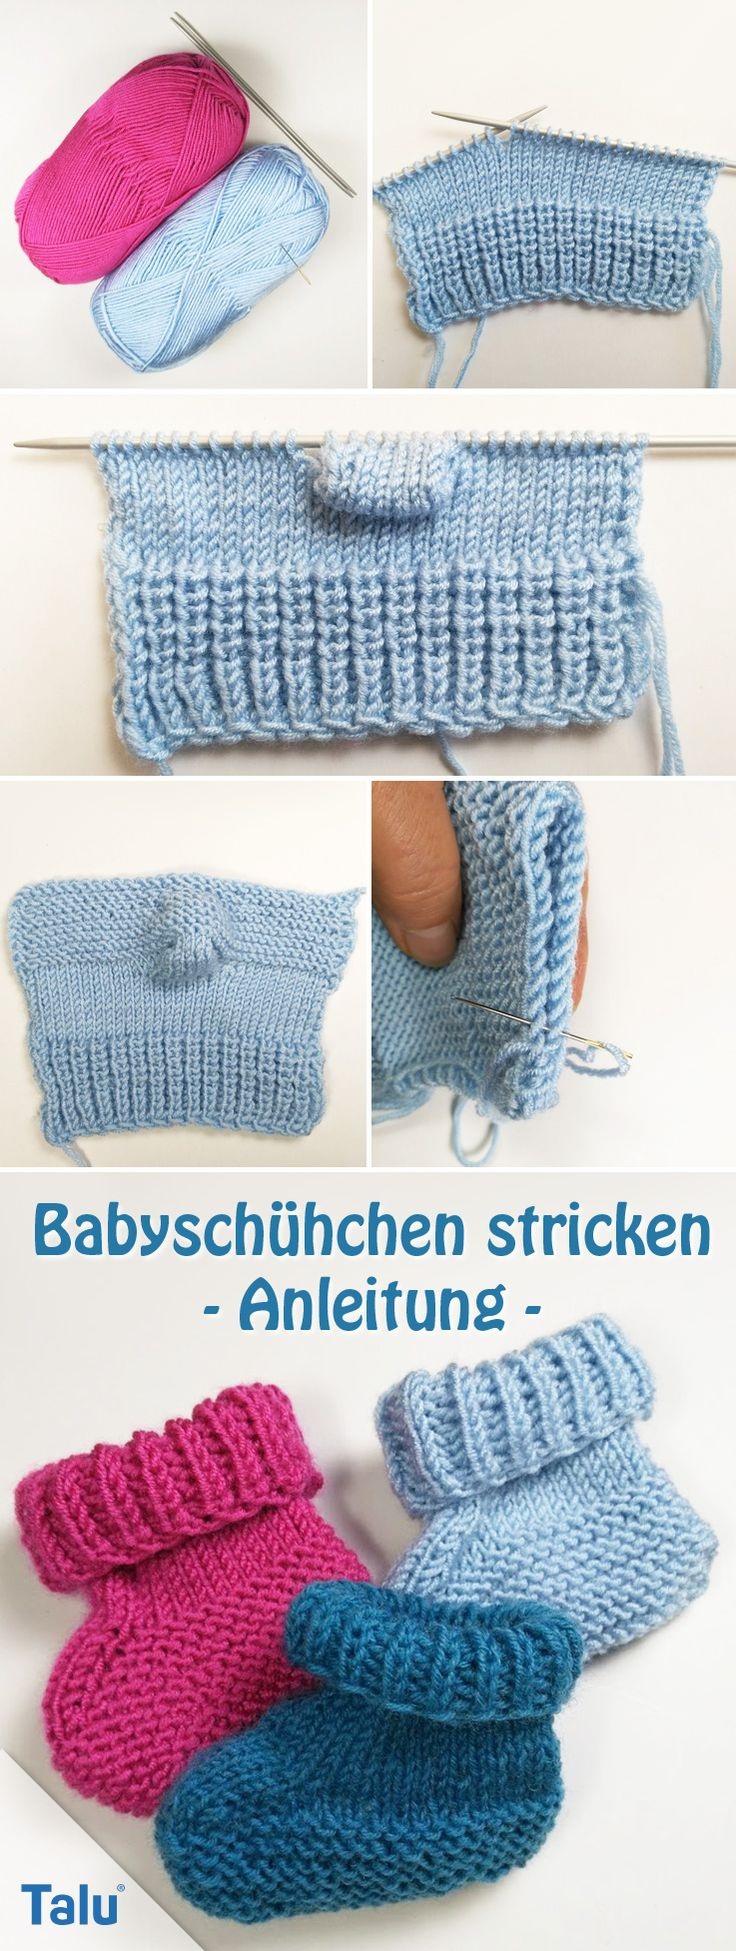 375 best Stricken images on Pinterest | Strickmuster, Stricken ...